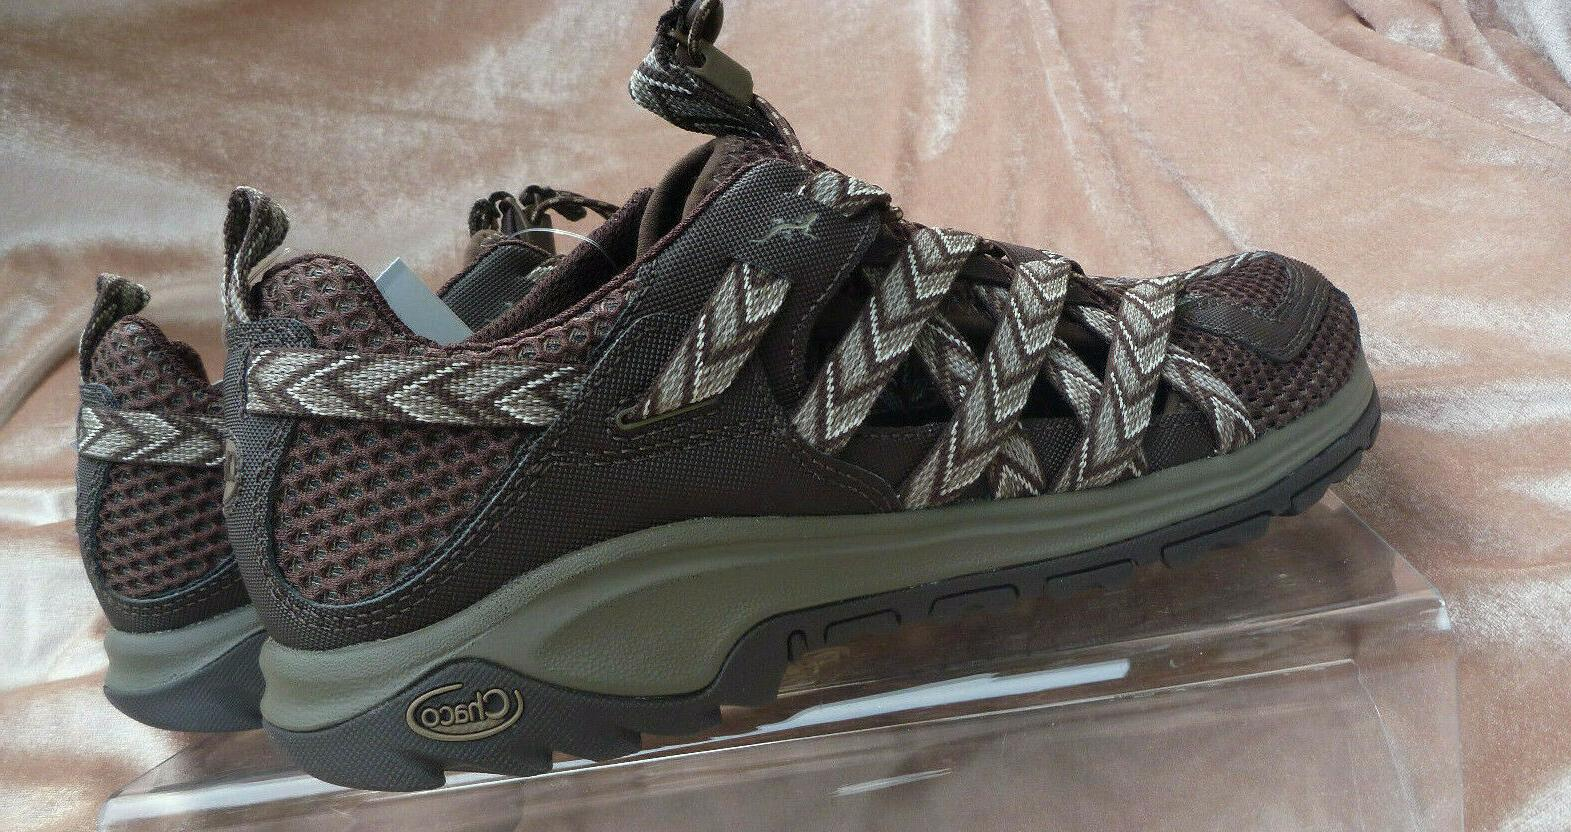 New Outcross Shoes Brown sz 11.5 Mesh